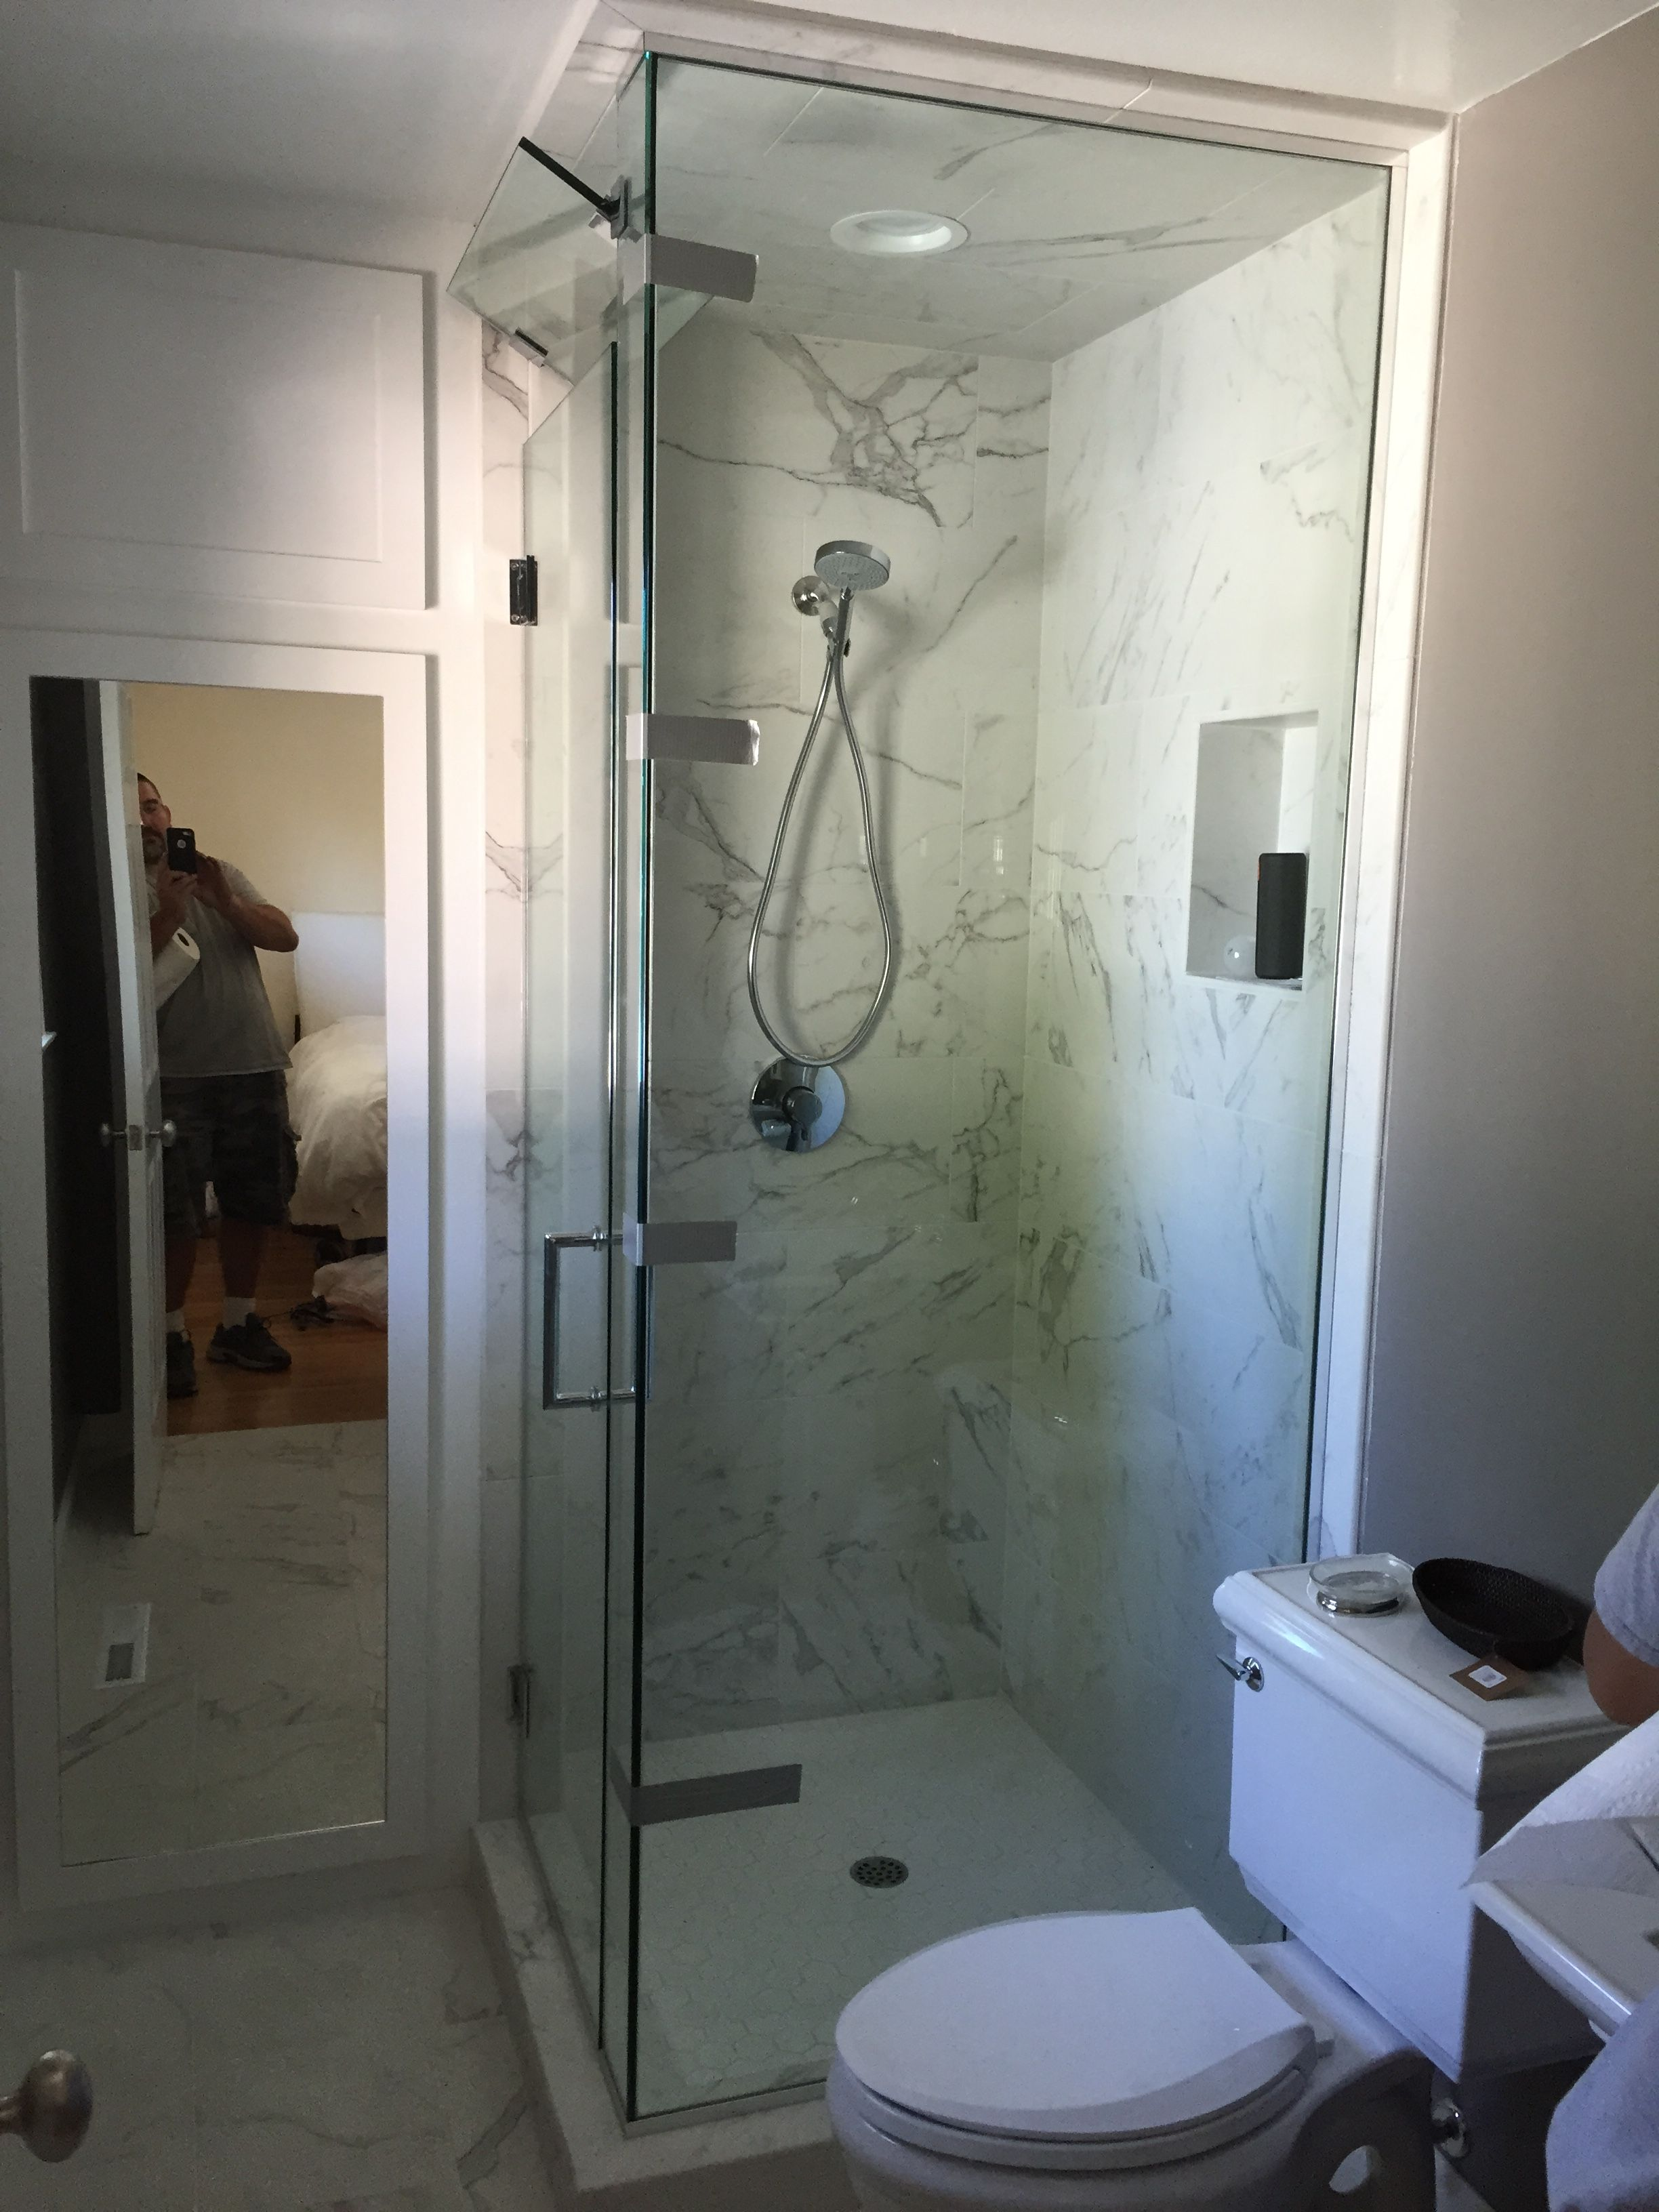 This Frameless Floor To Ceiling Glass Shower Enclosure Has A Glass Transom Above The Door That Master Bathroom Renovation Shower Enclosure Bathroom Renovation